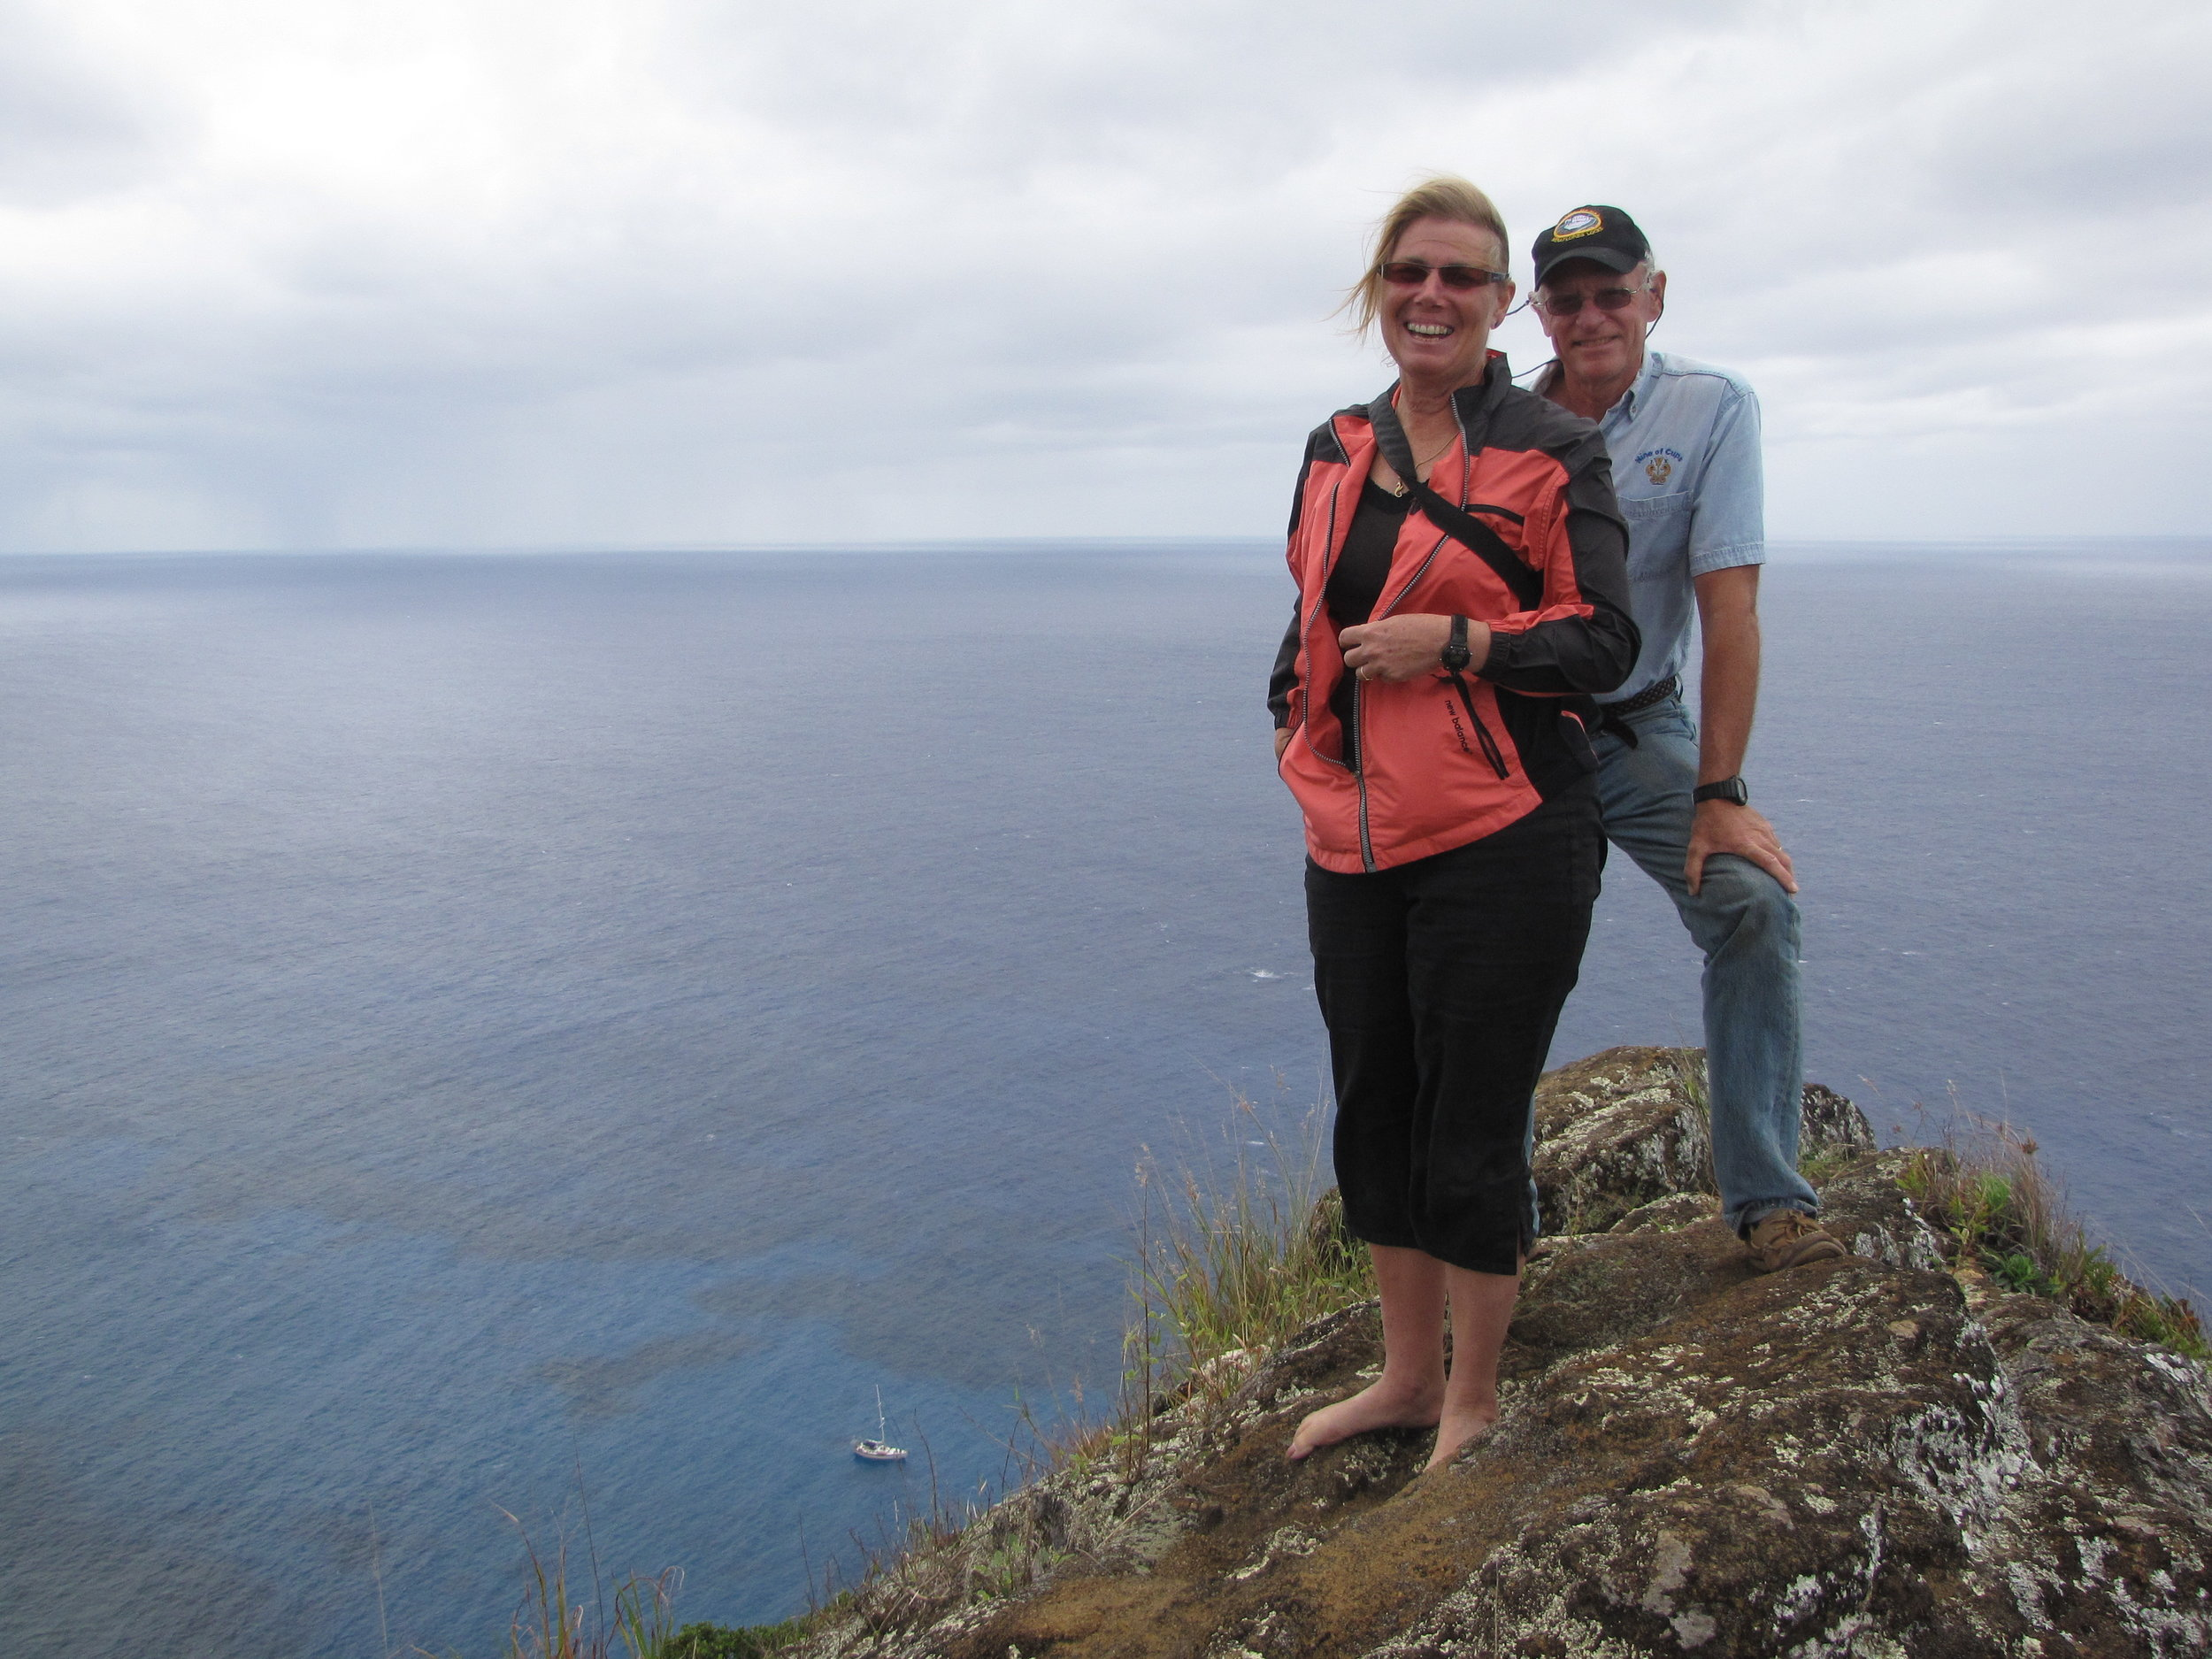 Way up high on Pitcairn Island ... that's Cups anchored far below!